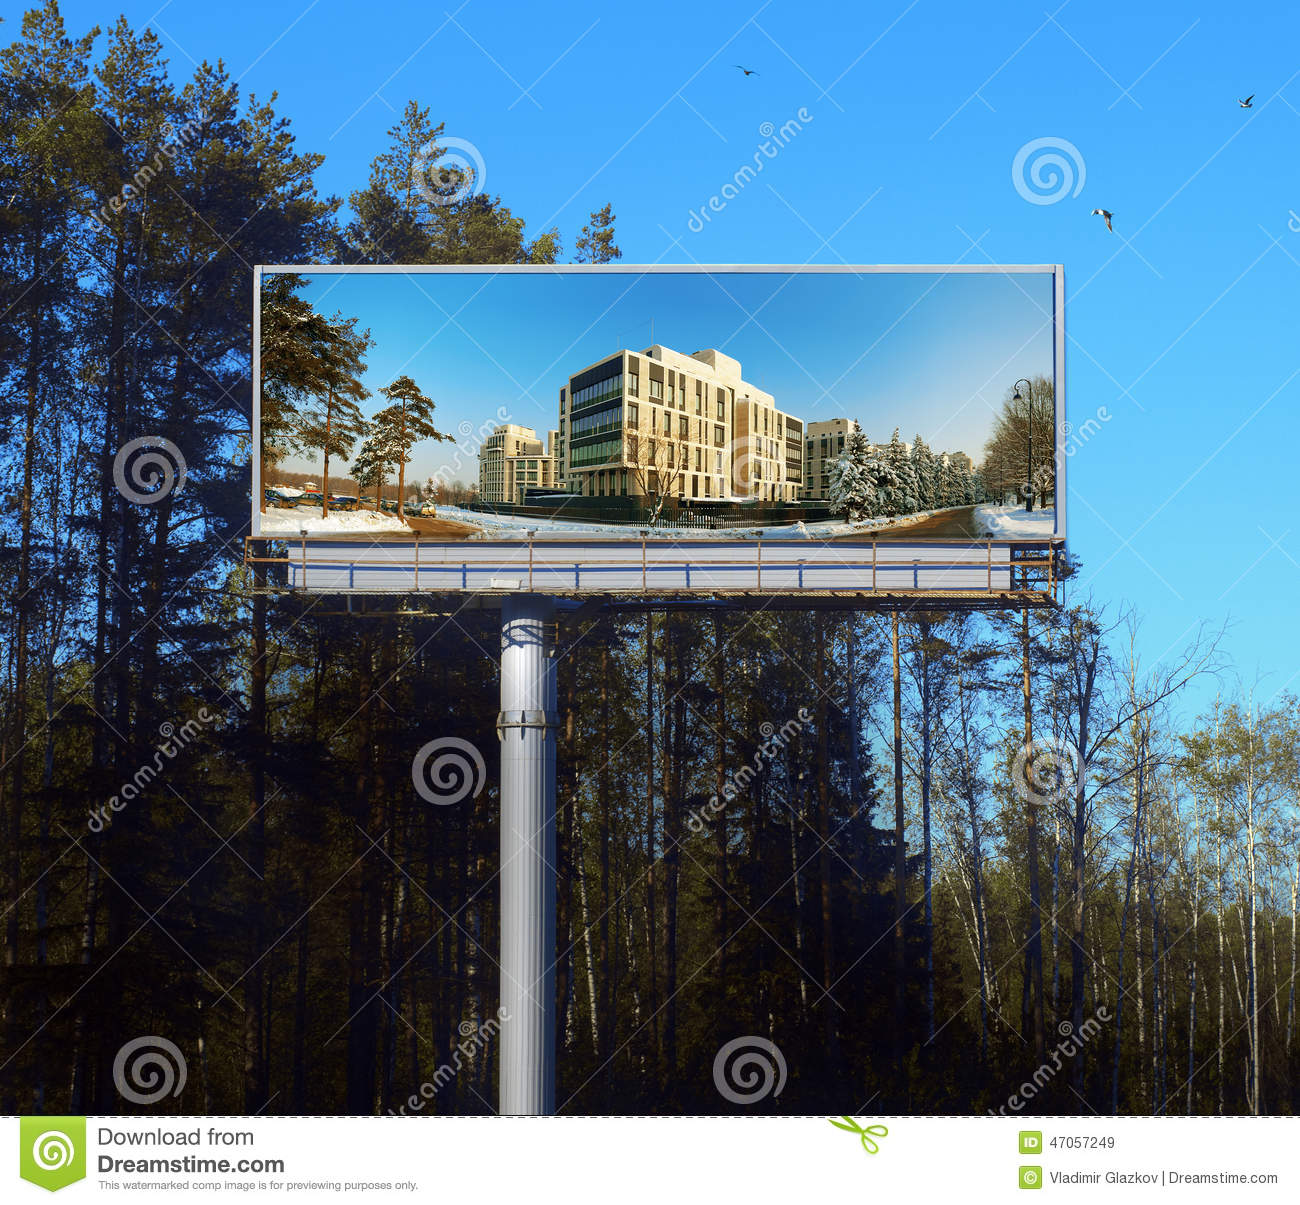 how to make real estate billboards